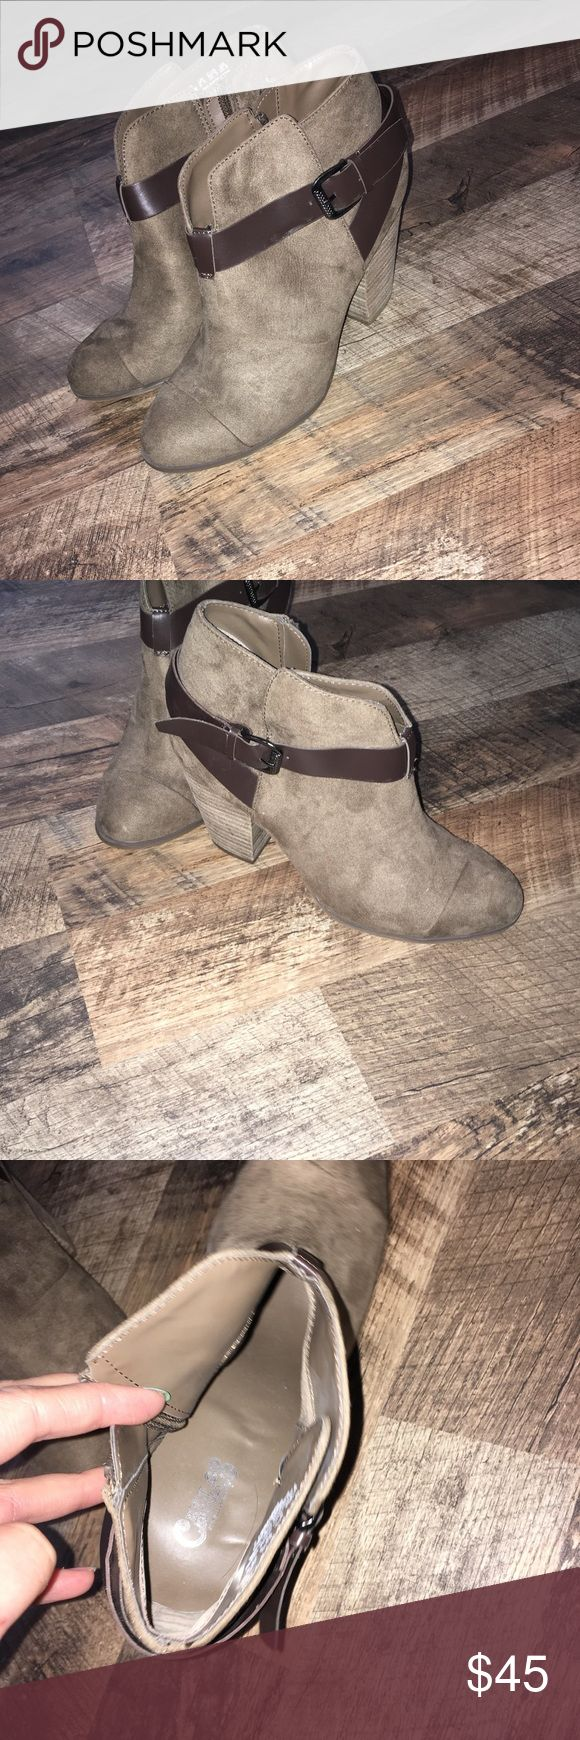 Ankle boots Barely worn ankle boots size 8.5. Super cute with skinny jeans! carlos Shoes Ankle Boots & Booties